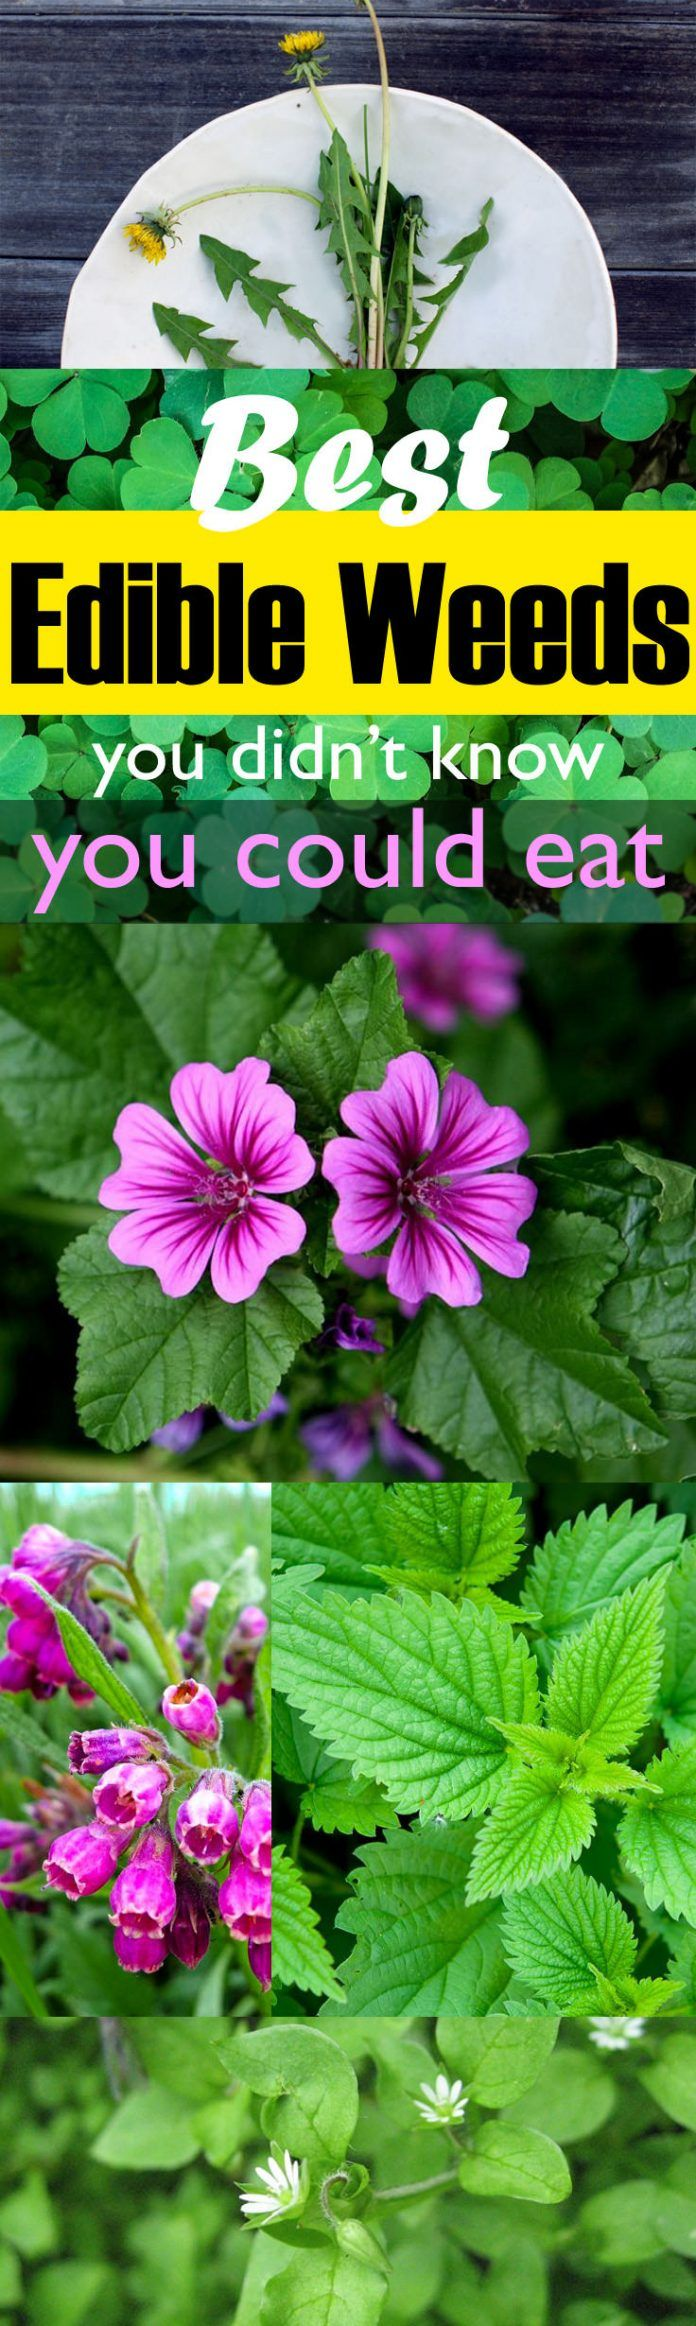 Best Edible Weeds You Didn't Know You Could Eat